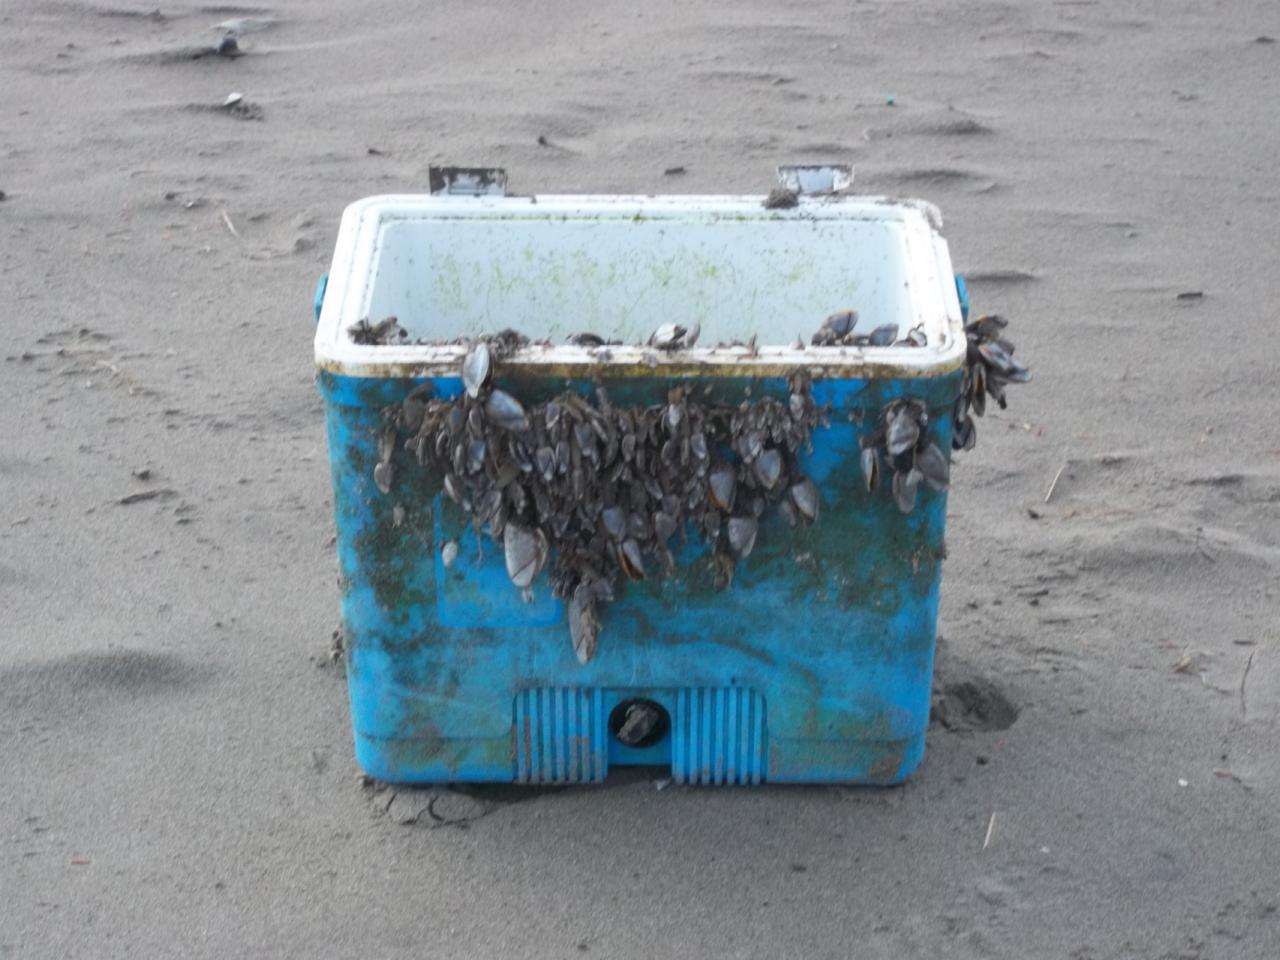 A heavily encrusted cooler came in on the mornings high tide.